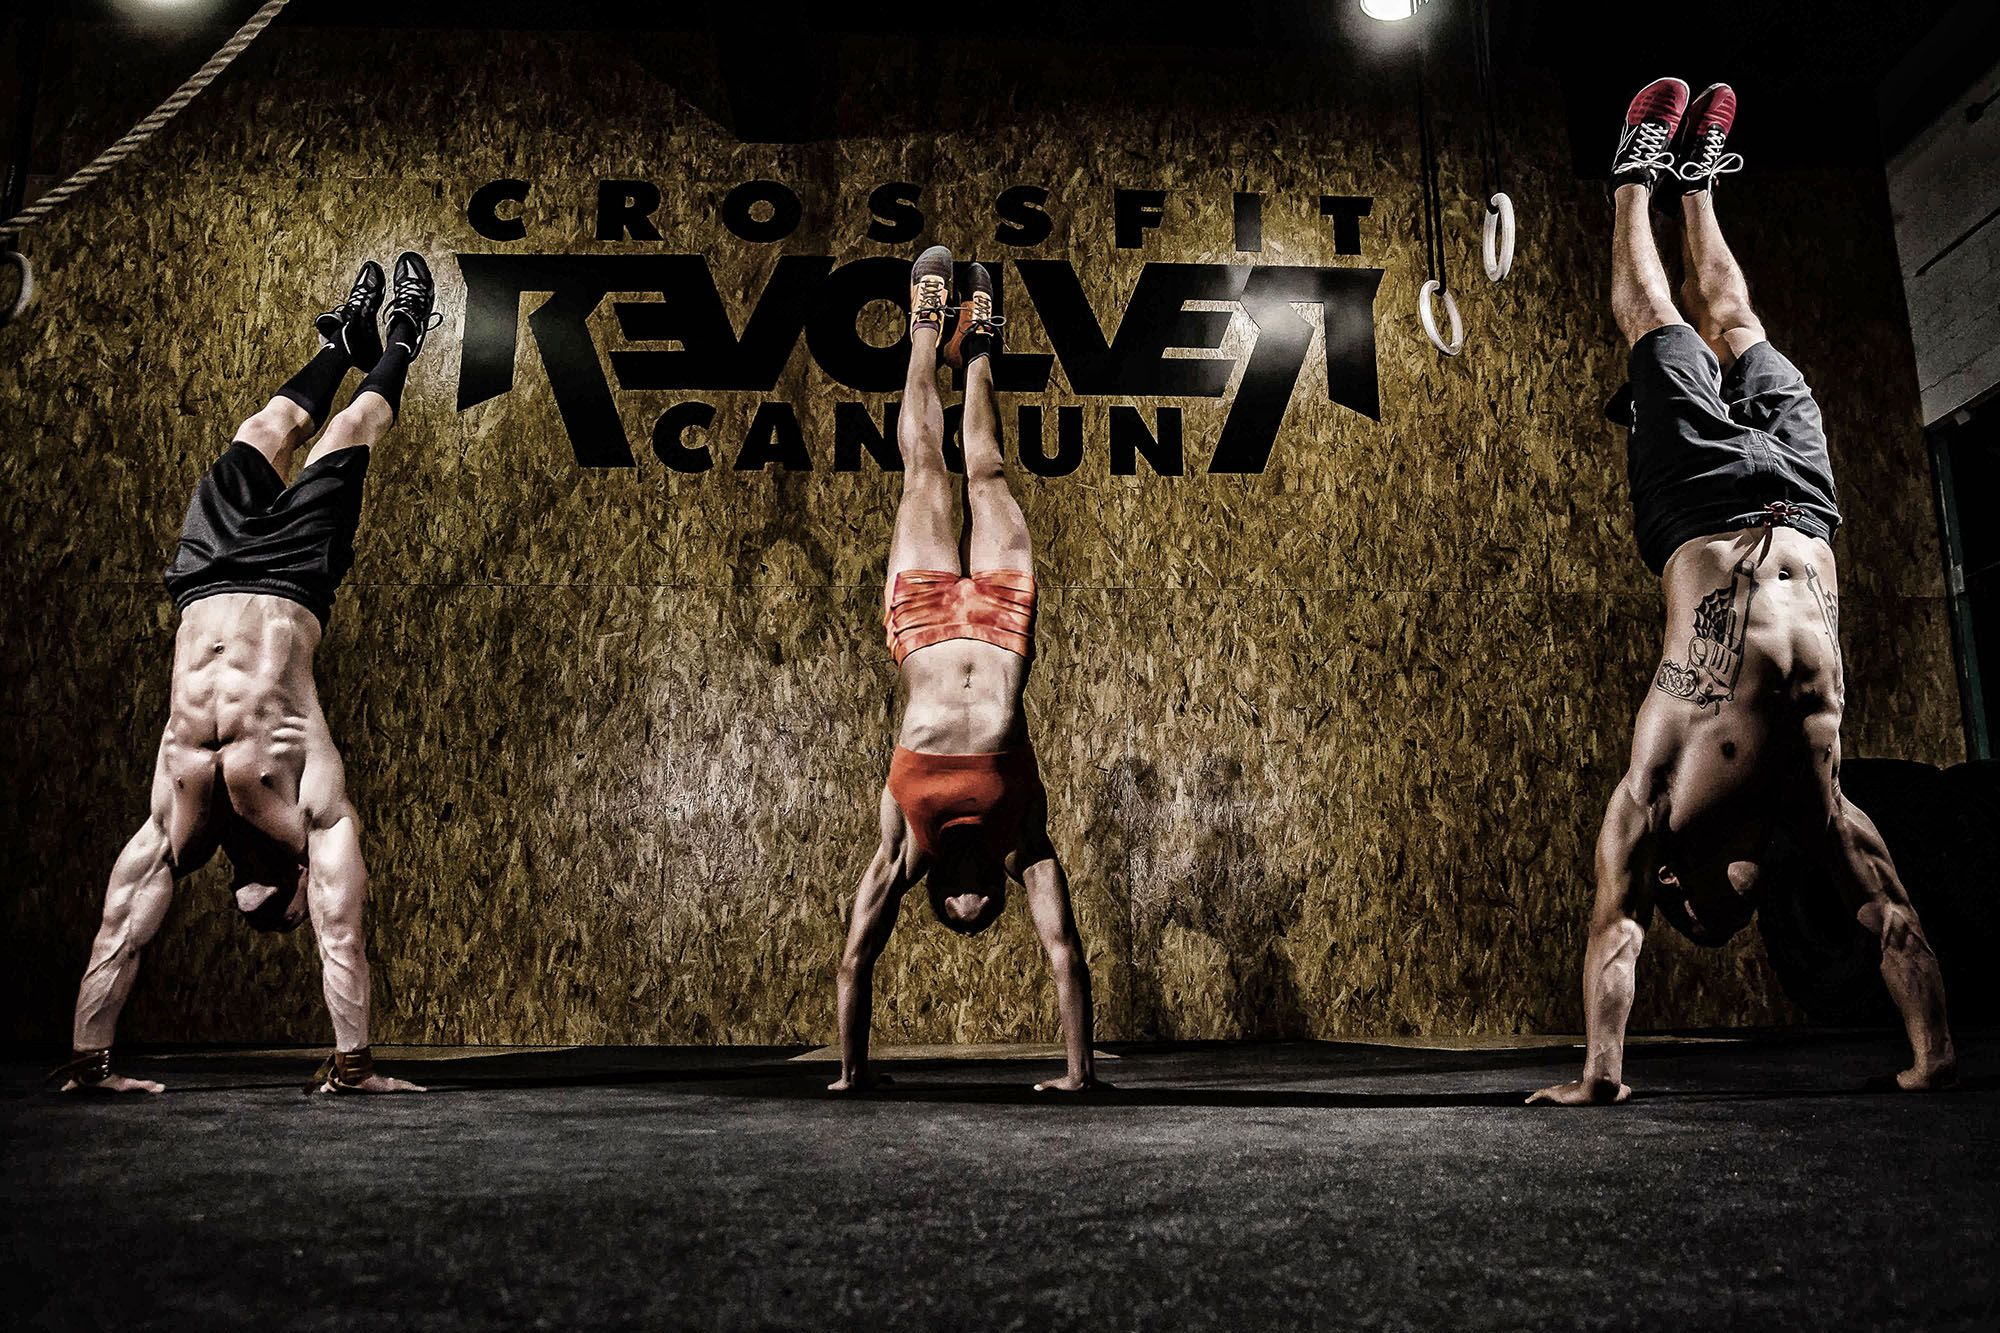 Crossfit Games 2014. Are you ready? Elite fitness